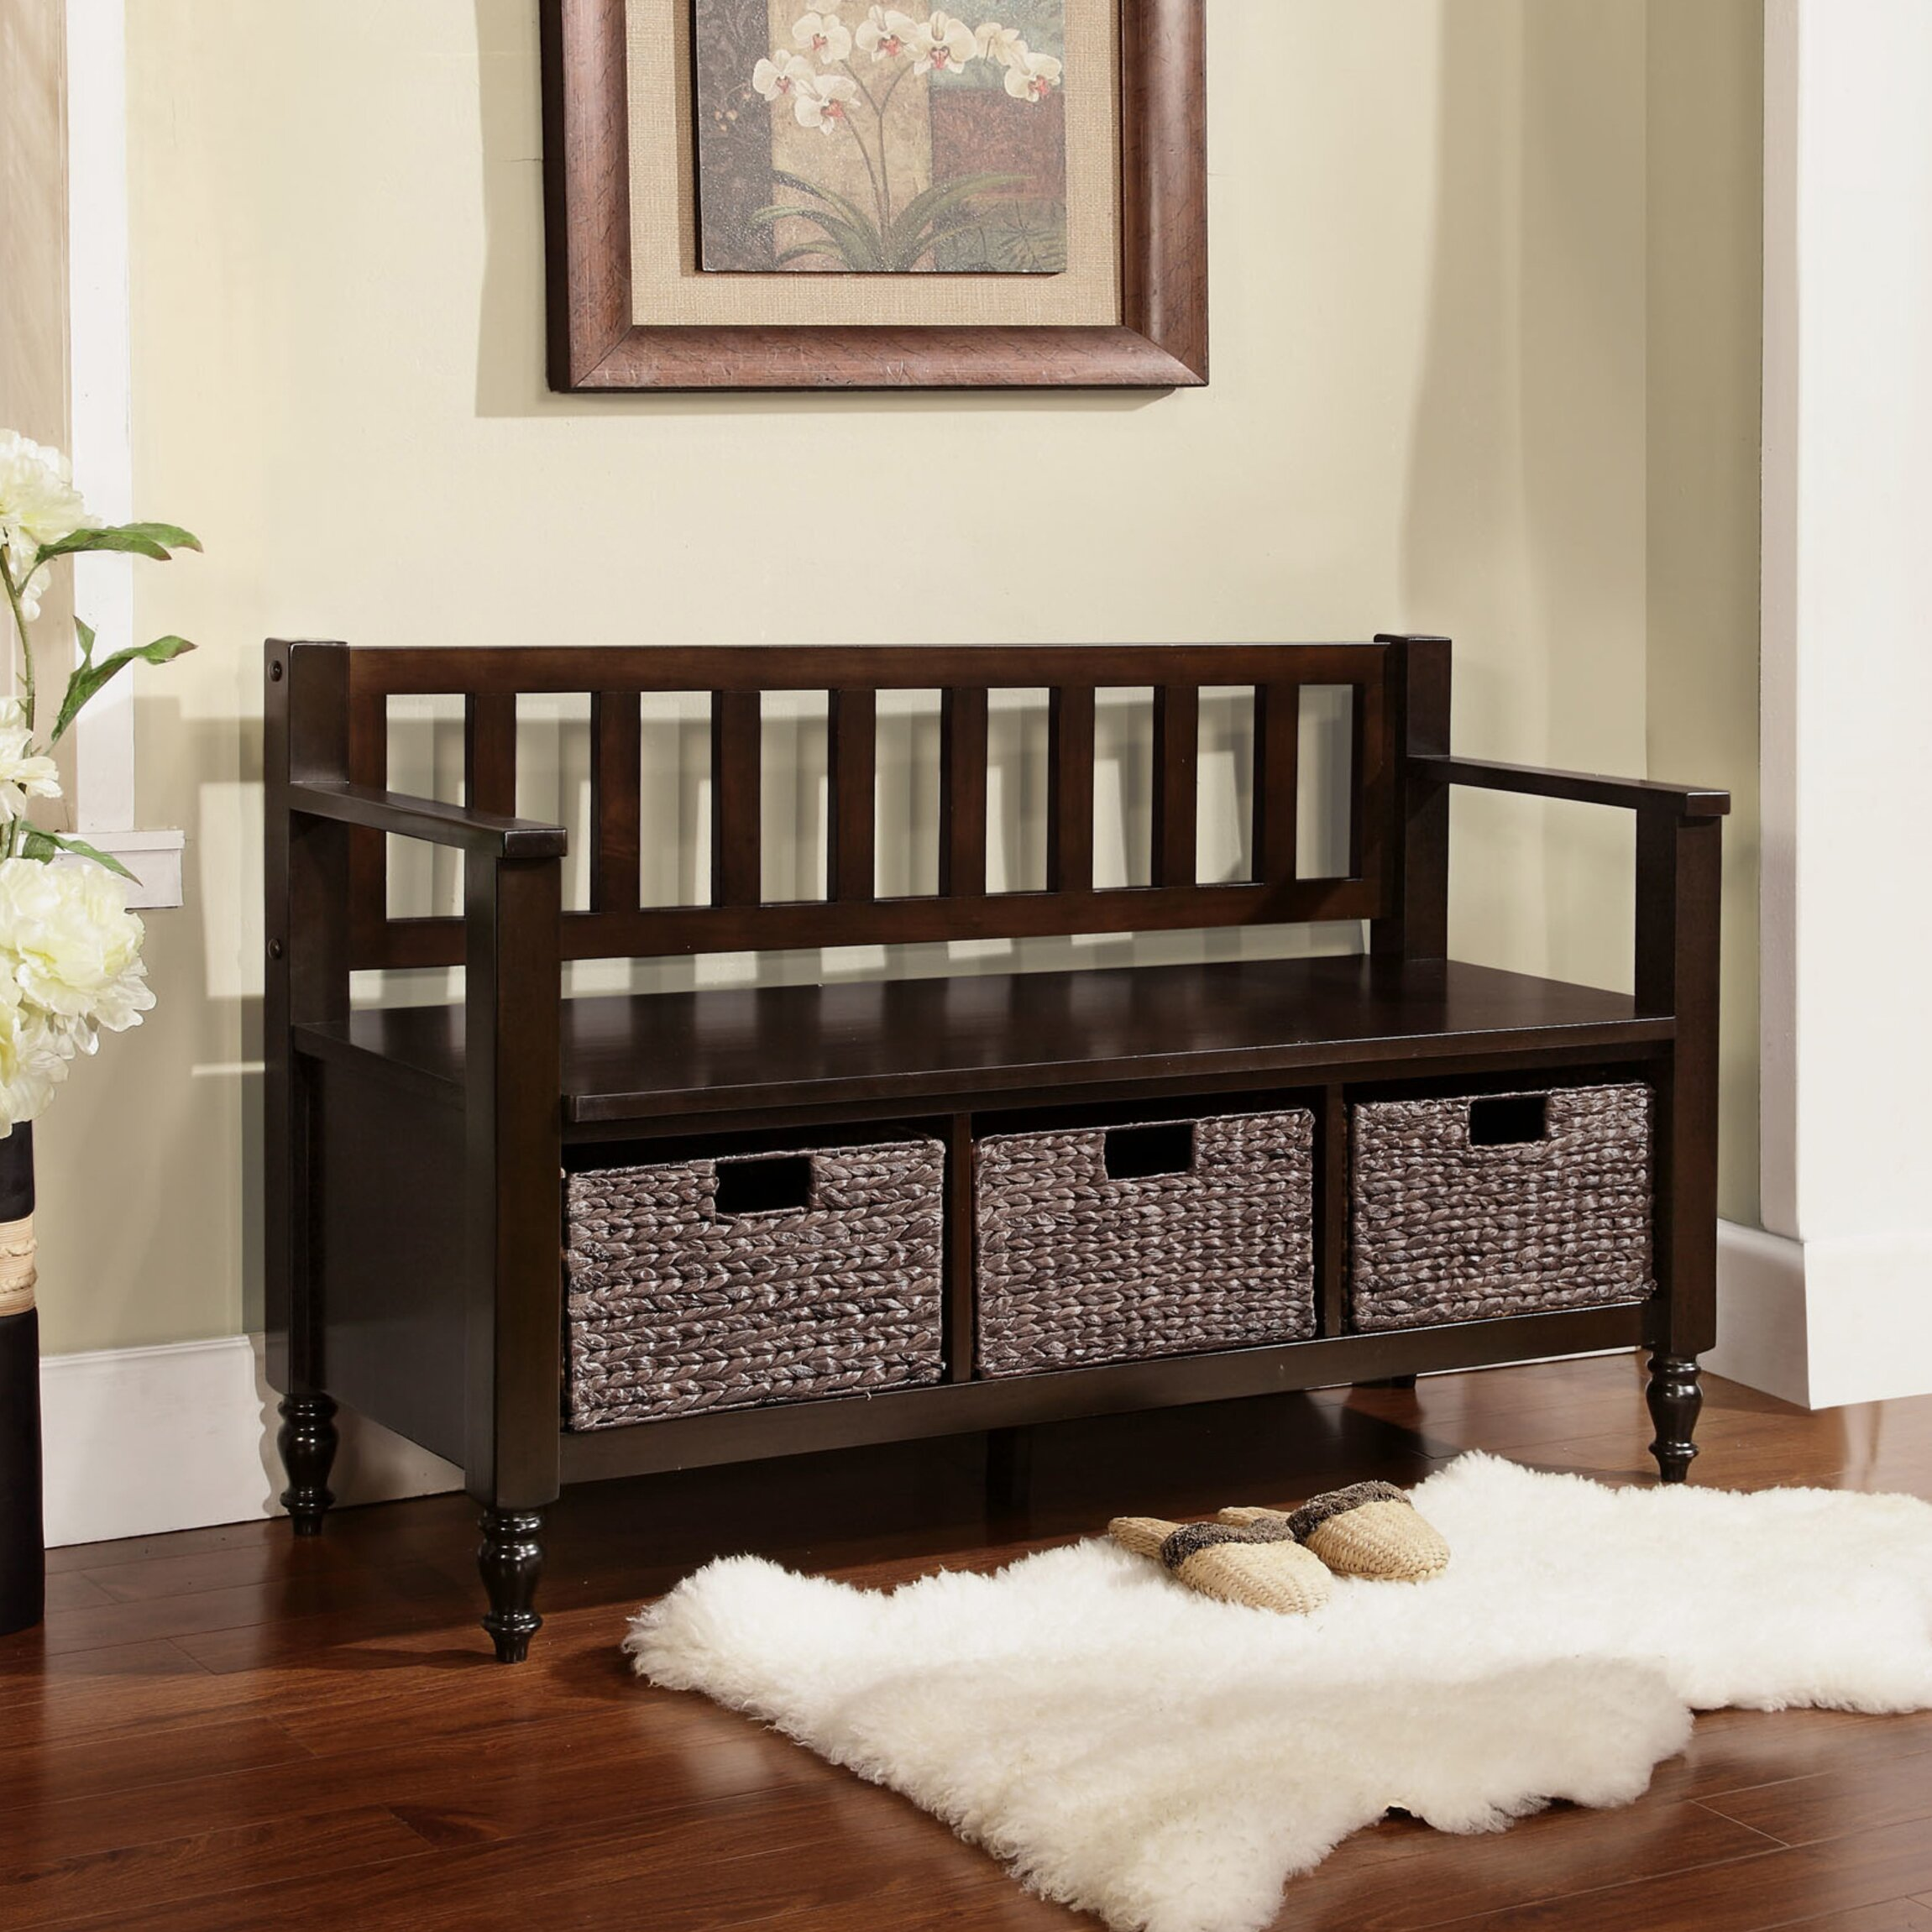 Storage For Foyer : Simpli home dakota entryway bench reviews wayfair